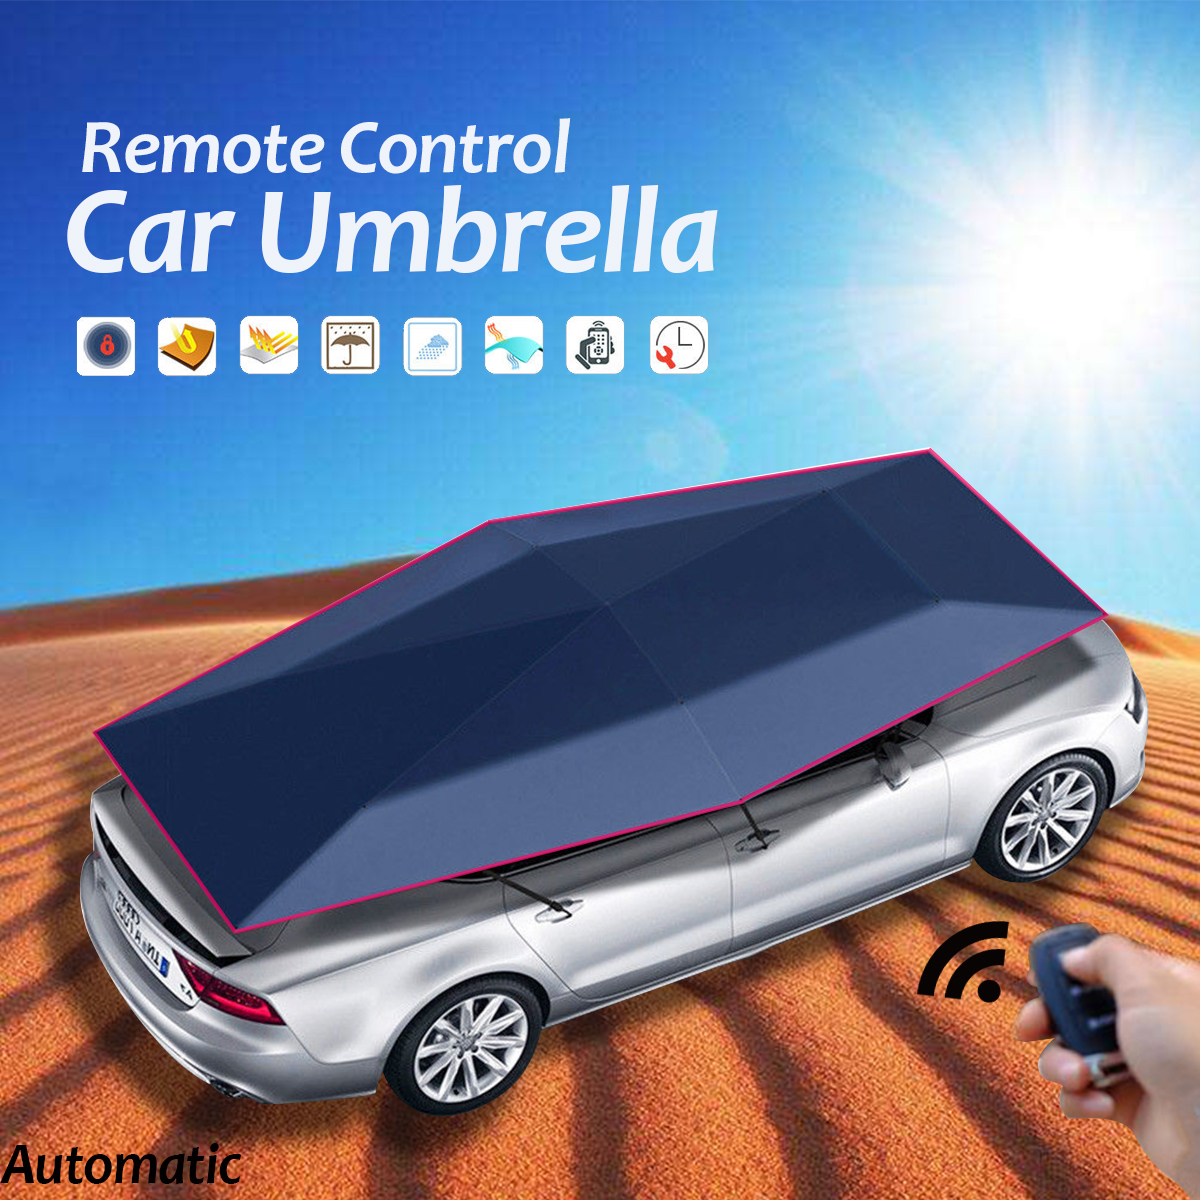 Automatic Remote Control Car Umbrella Tent Cover SUV Truck Sun Shade Waterproof Foldable Car Canopy Tent foldable outdoor car tent umbrella sunshade roof cover cloth full automatic anti uv waterproof windproof replaceable car cover